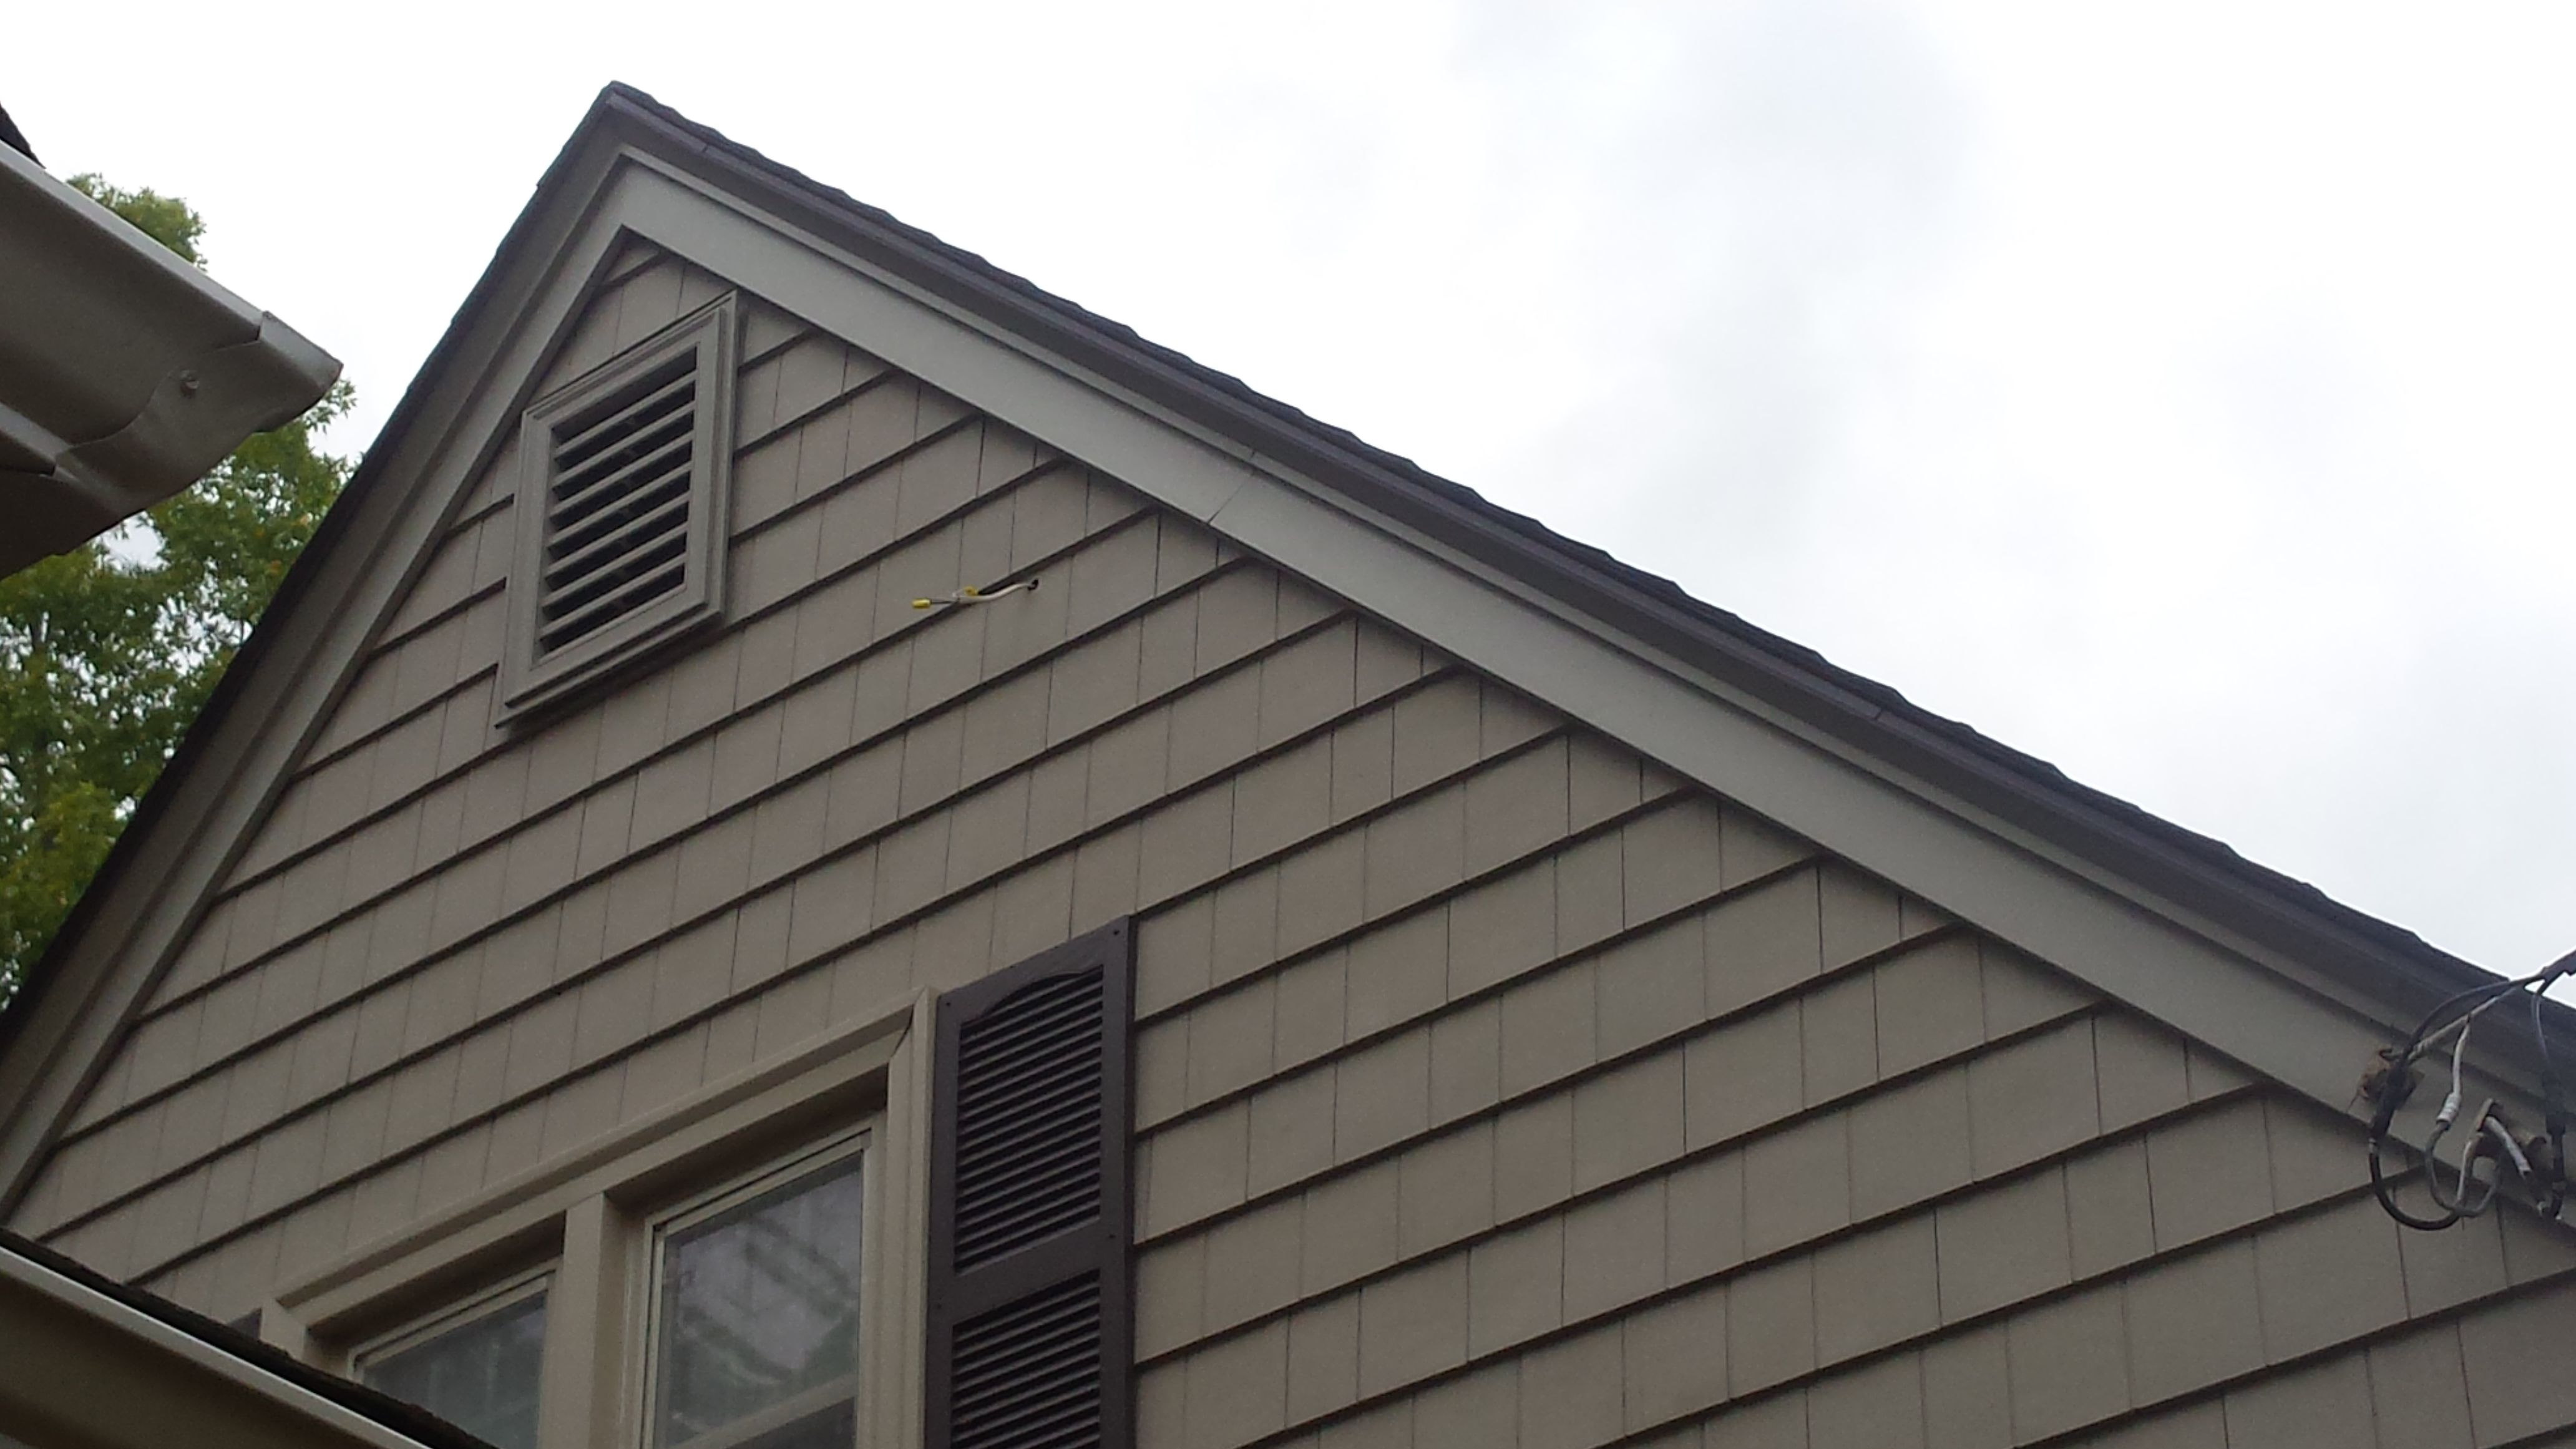 Certainteed Cedar Impressions Vinyl Siding In Natural Clay With